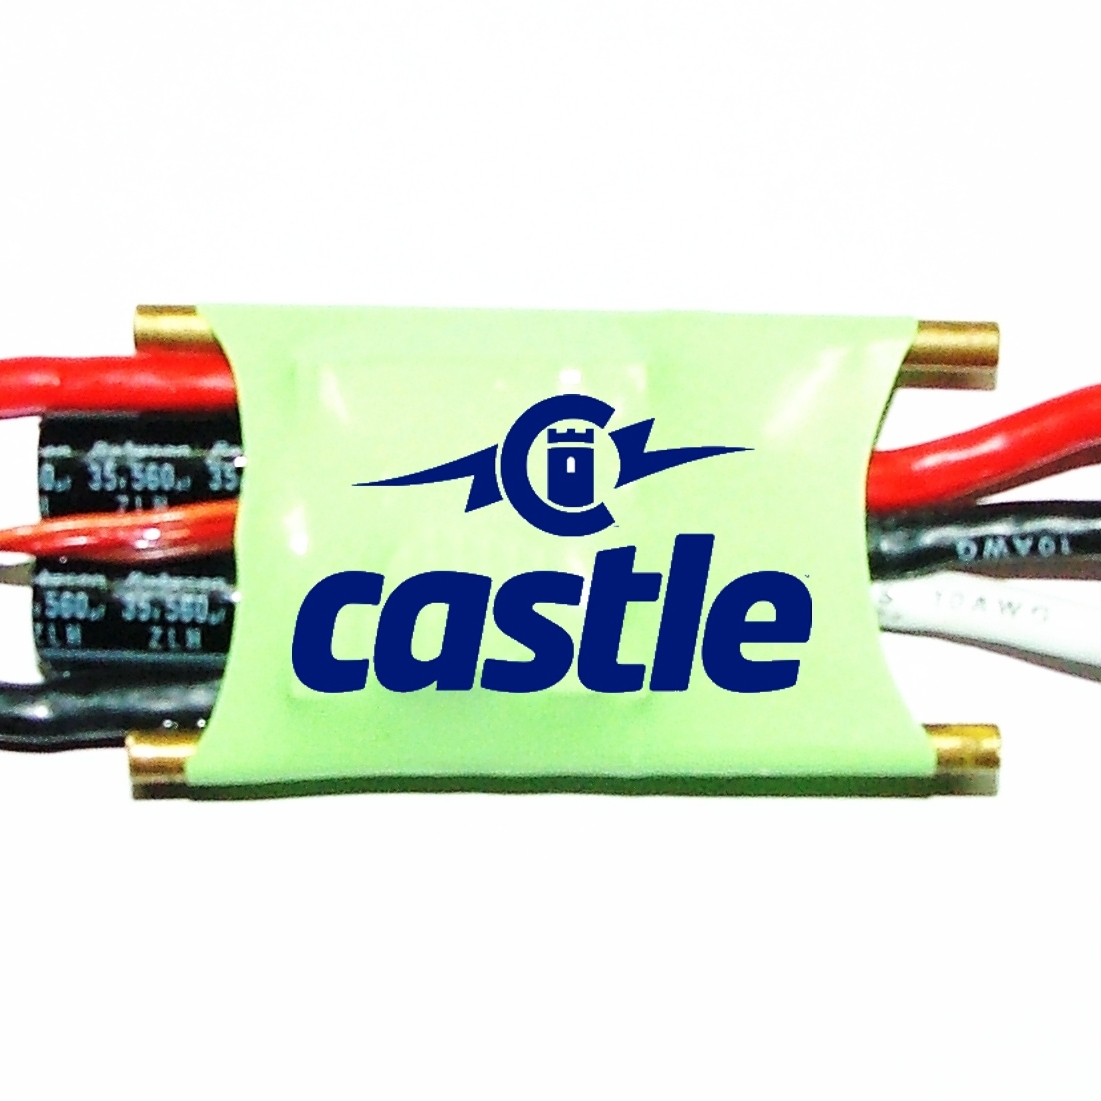 Castle 50a Link Wiring Diagram Creations Phoenix Edge Brushless Esc Speed Control Logger Water Cooling